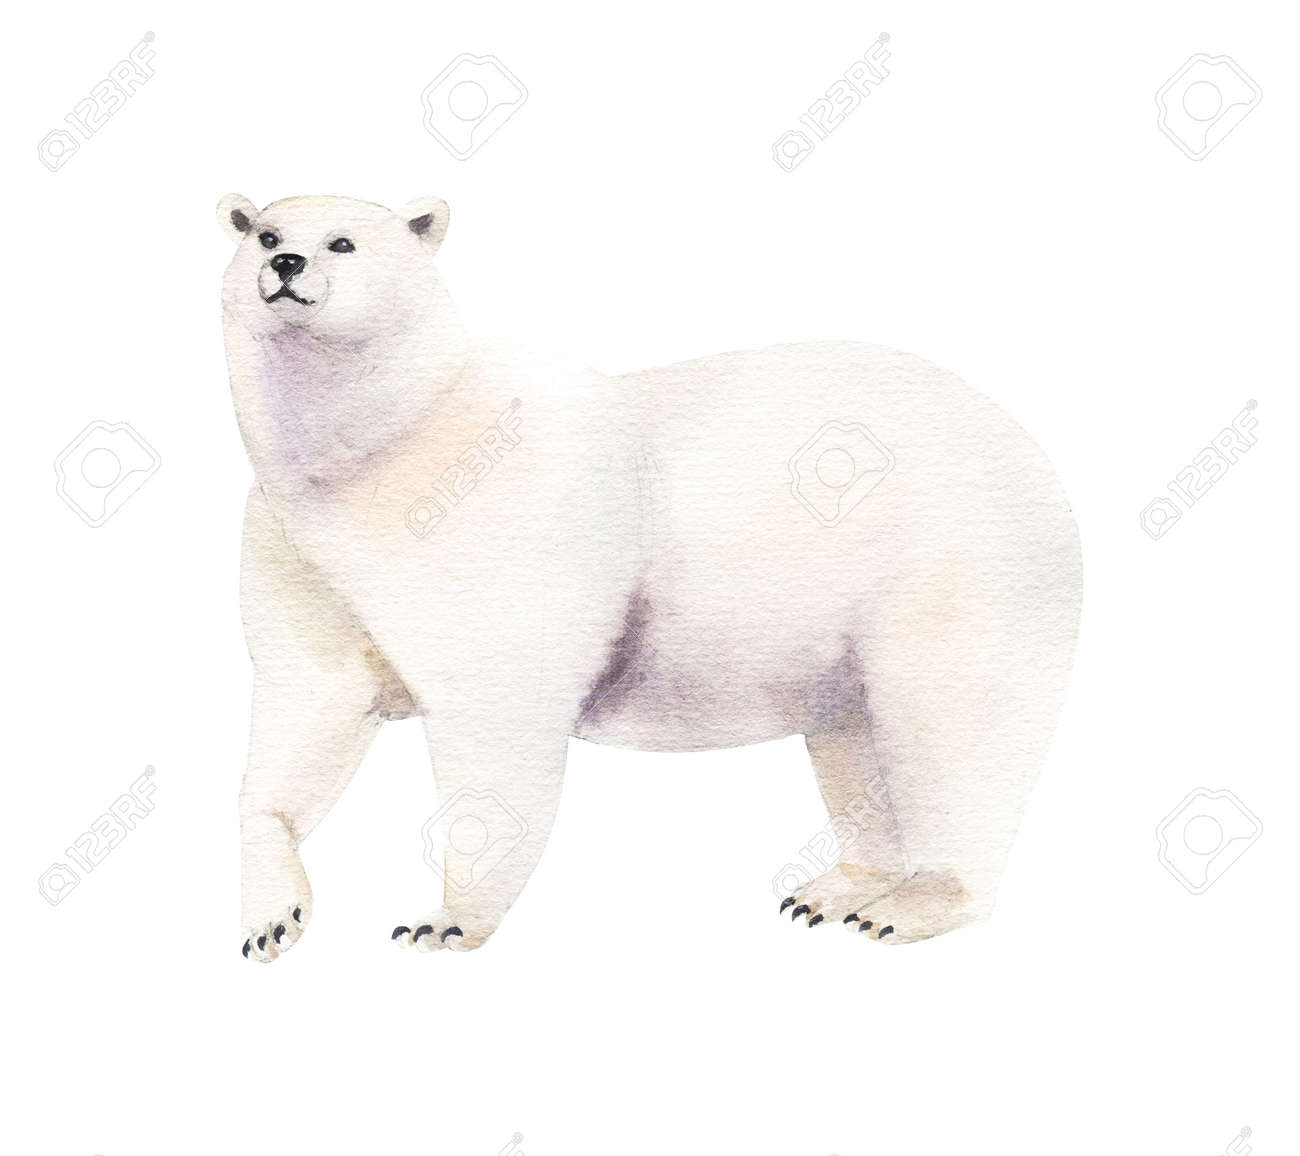 Watercolor realistic white bear animal isolated on a white illustration. - 164593878